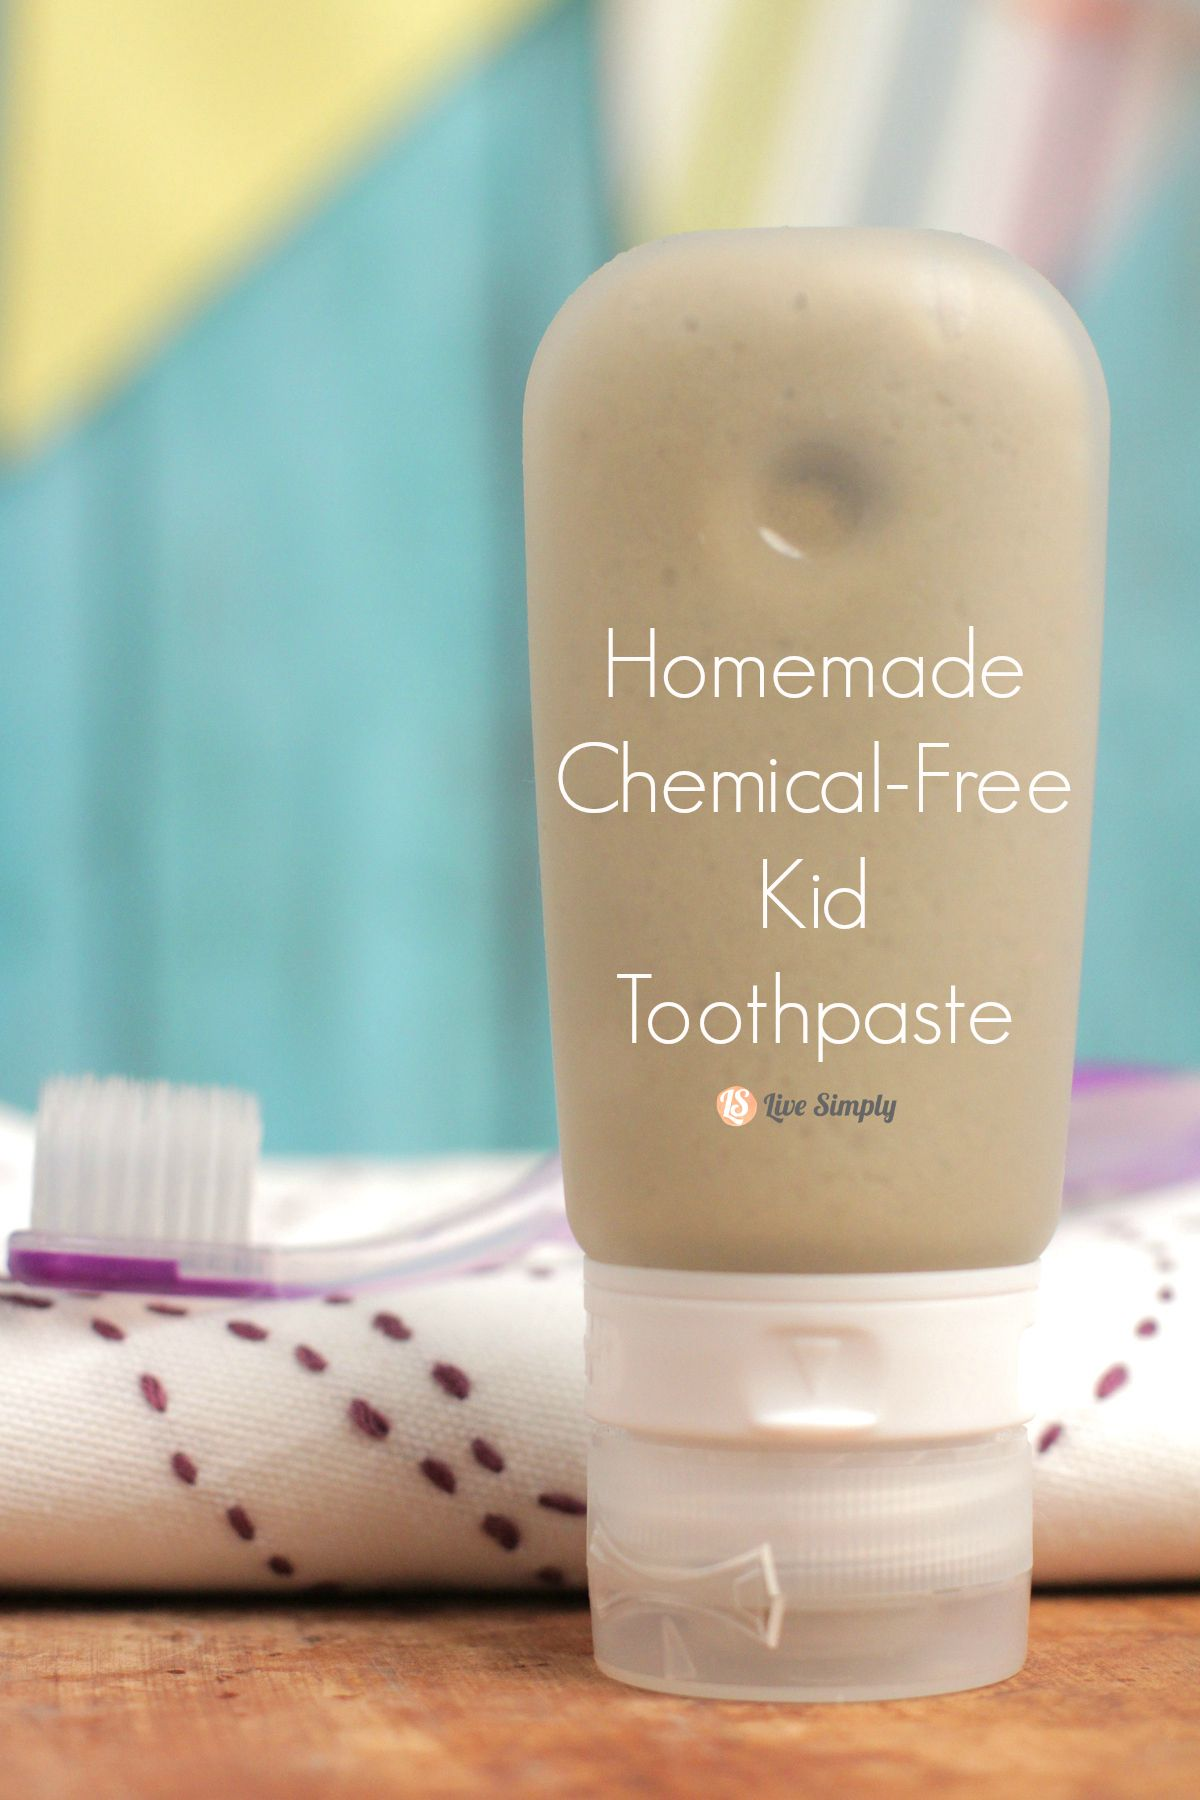 Homemade Chemical-Free Kid Toothpaste - Live Simply